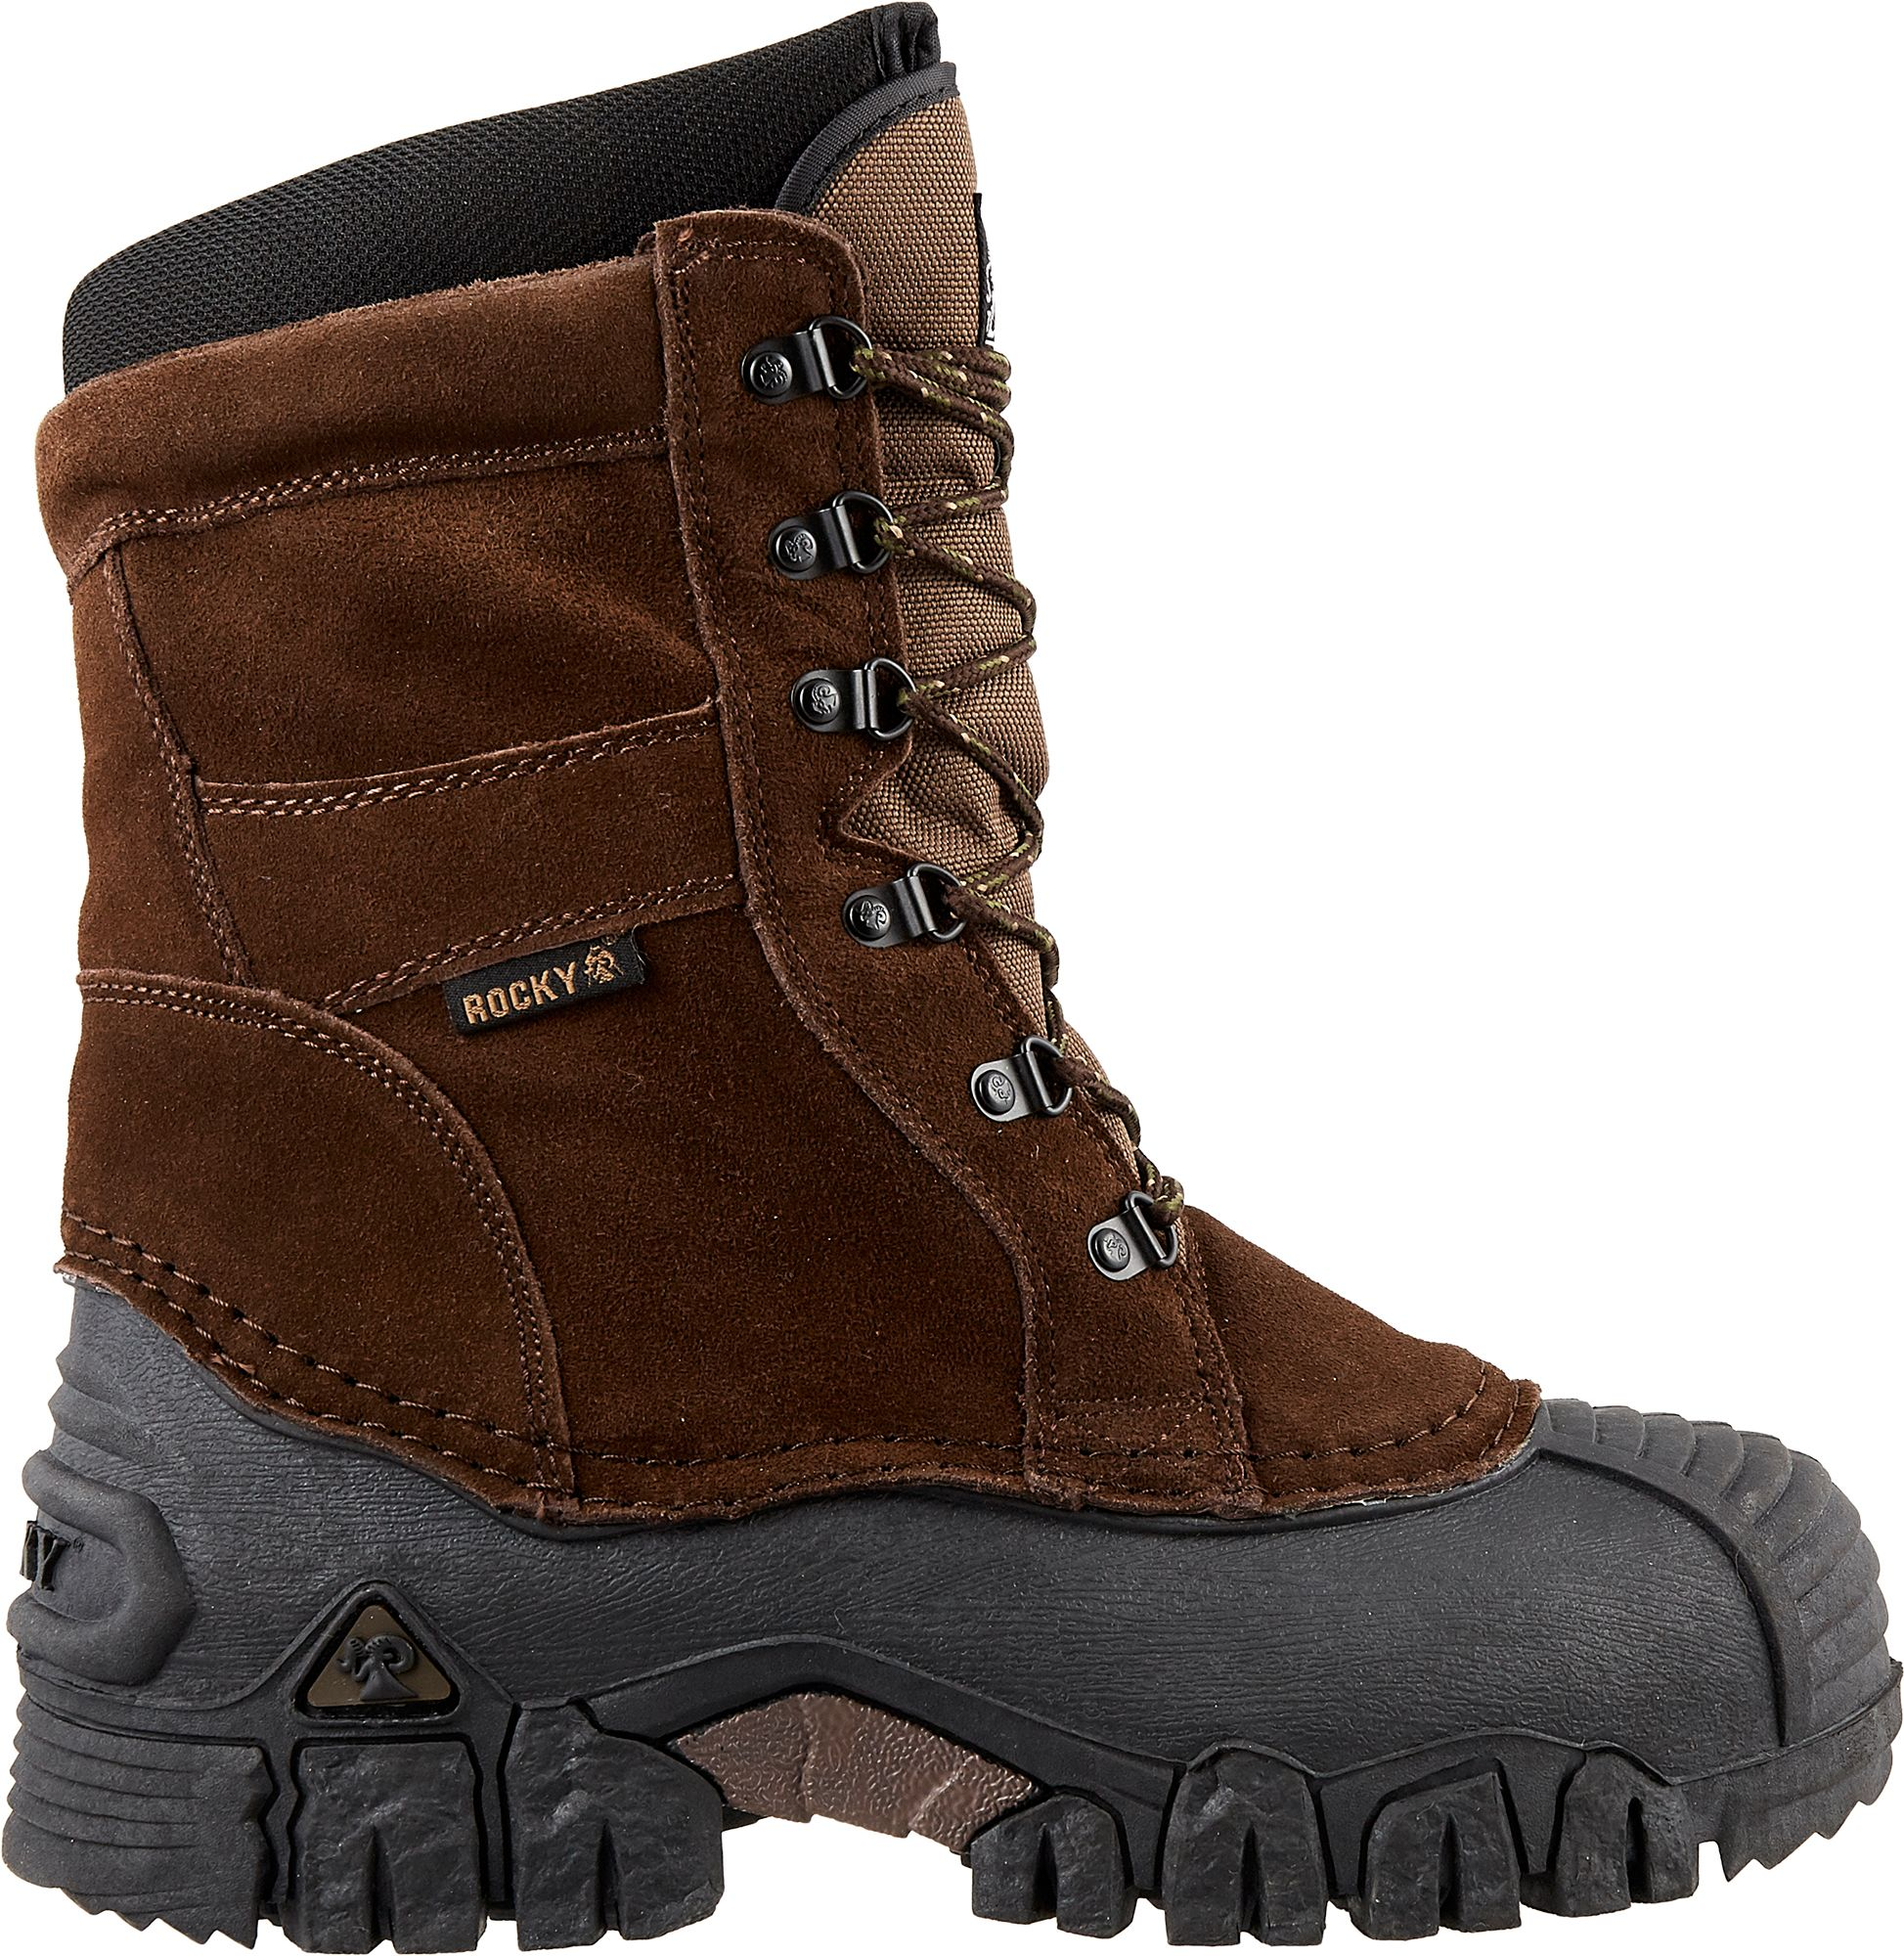 Rocky Men's Jasper Trac 200g Winter Boots| DICK'S Sporting Goods